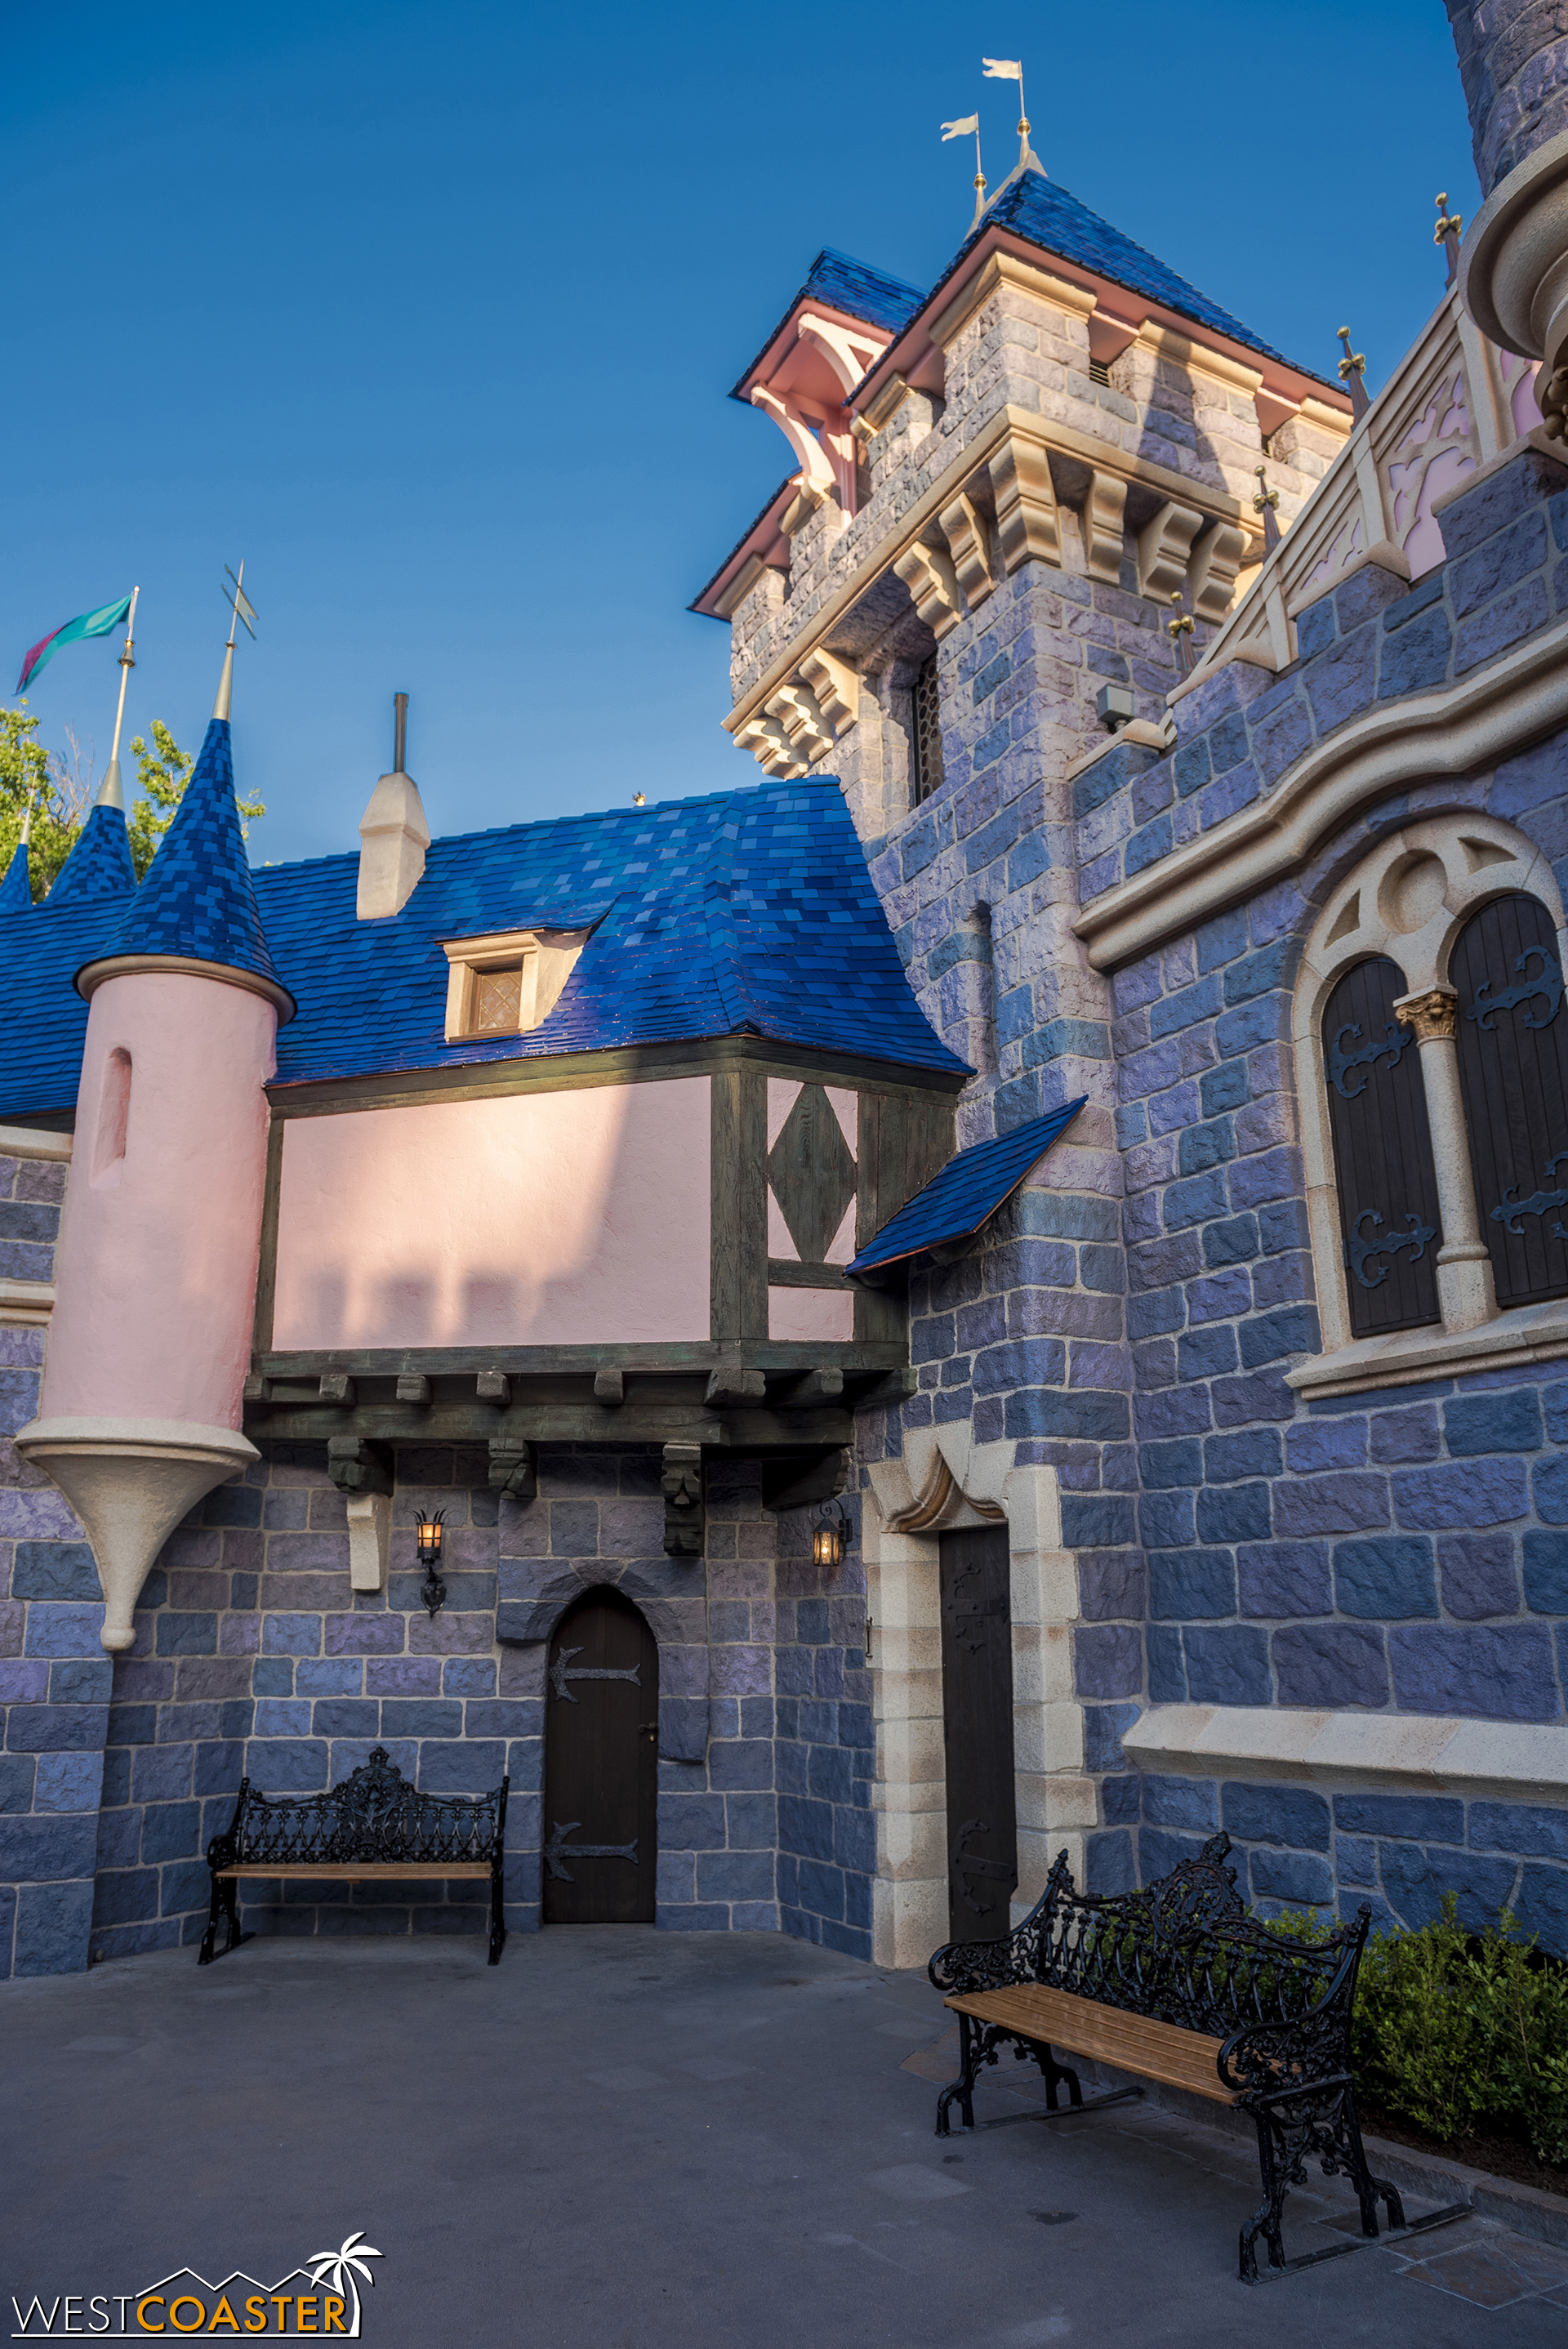 On the other side, toward Snow White's Wishing Well.